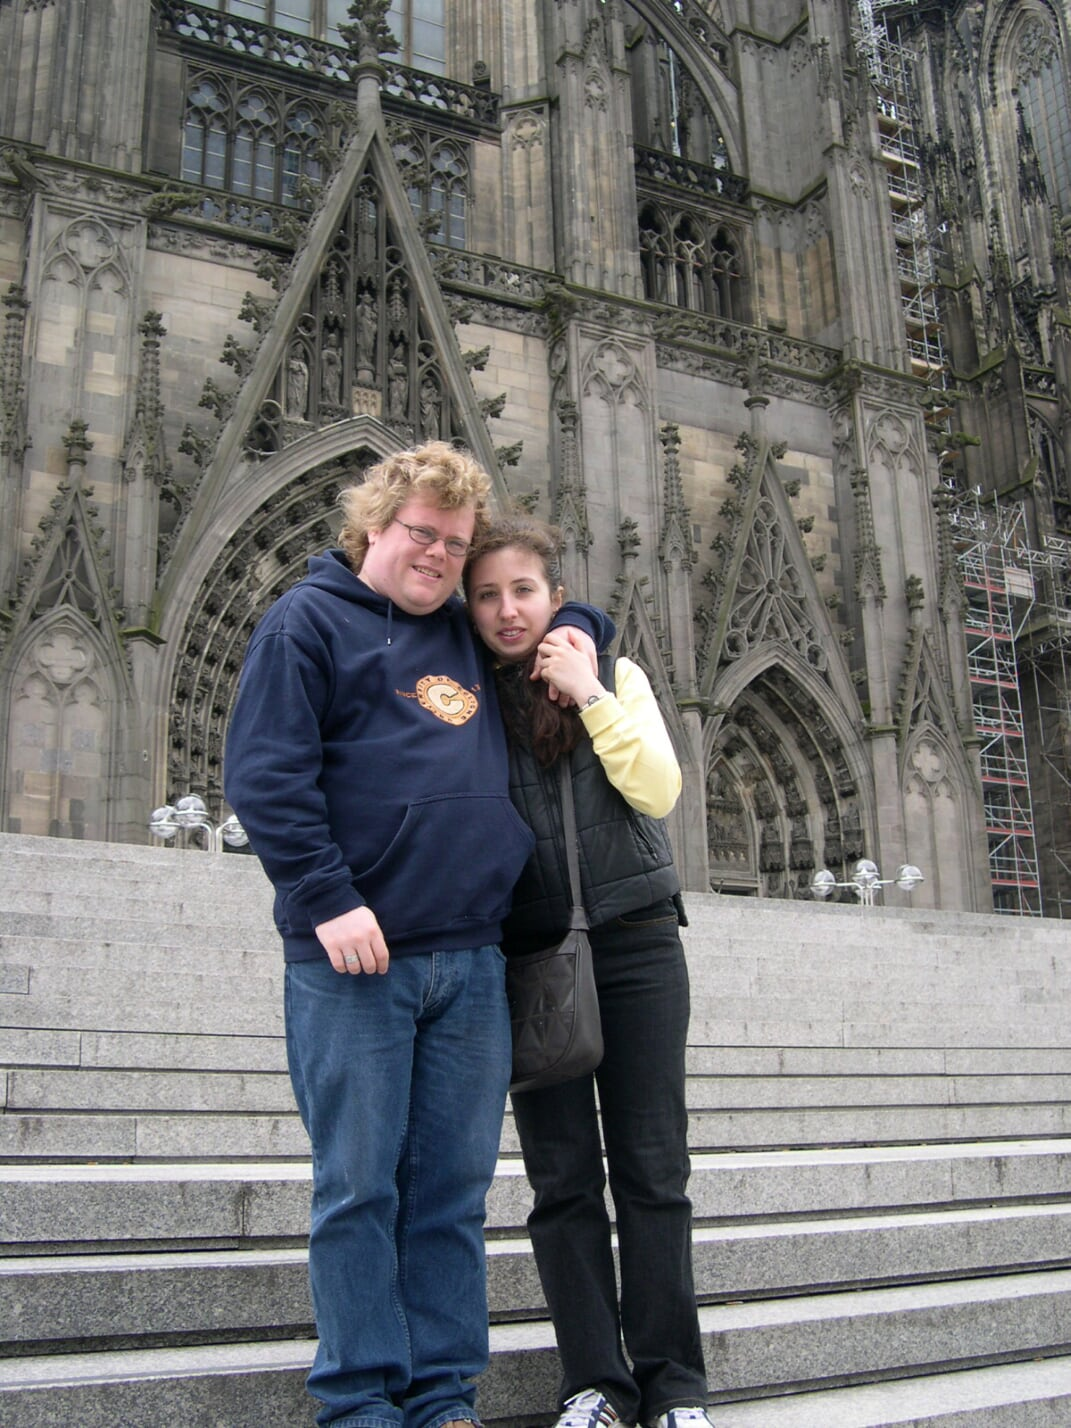 Marina Gorelik and I on the steps of Cologne Cathedral 2006